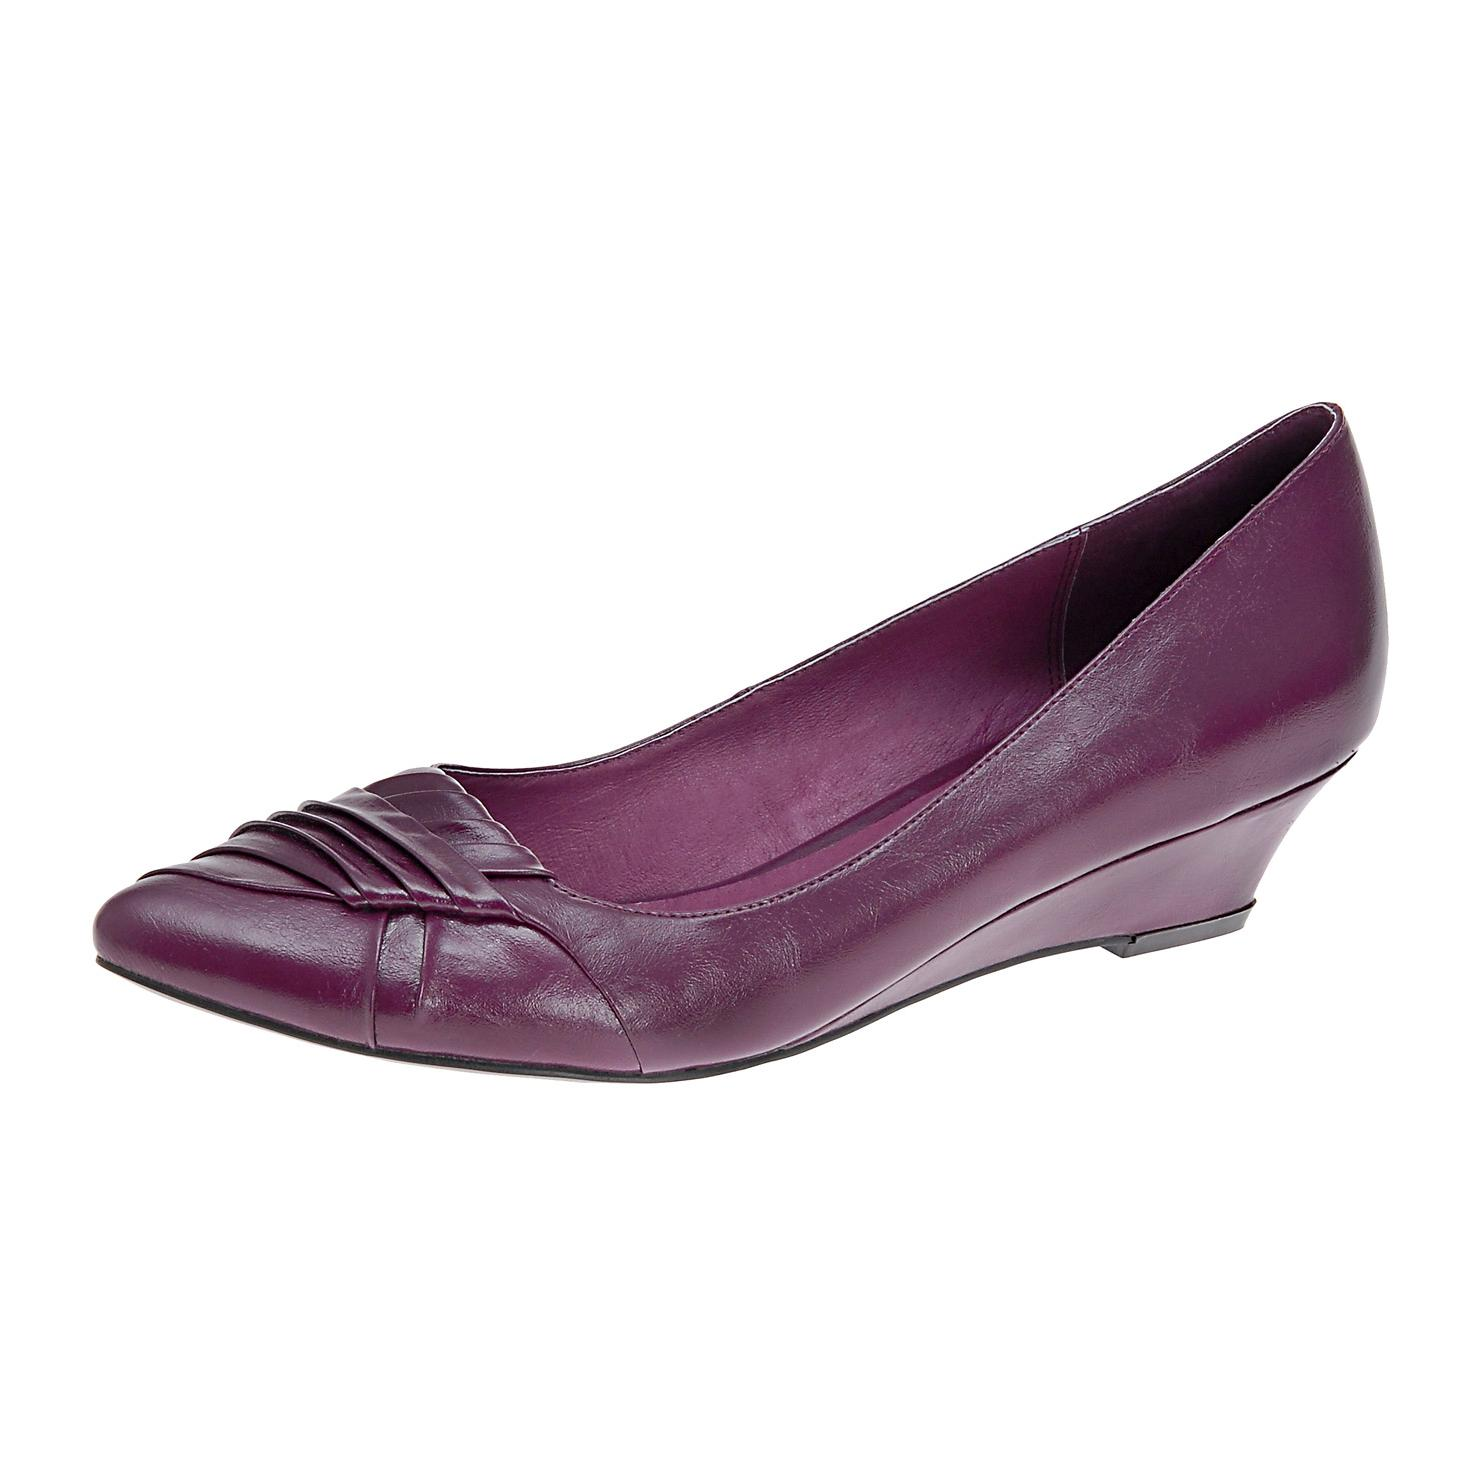 monics blog purple wedge wedding shoes